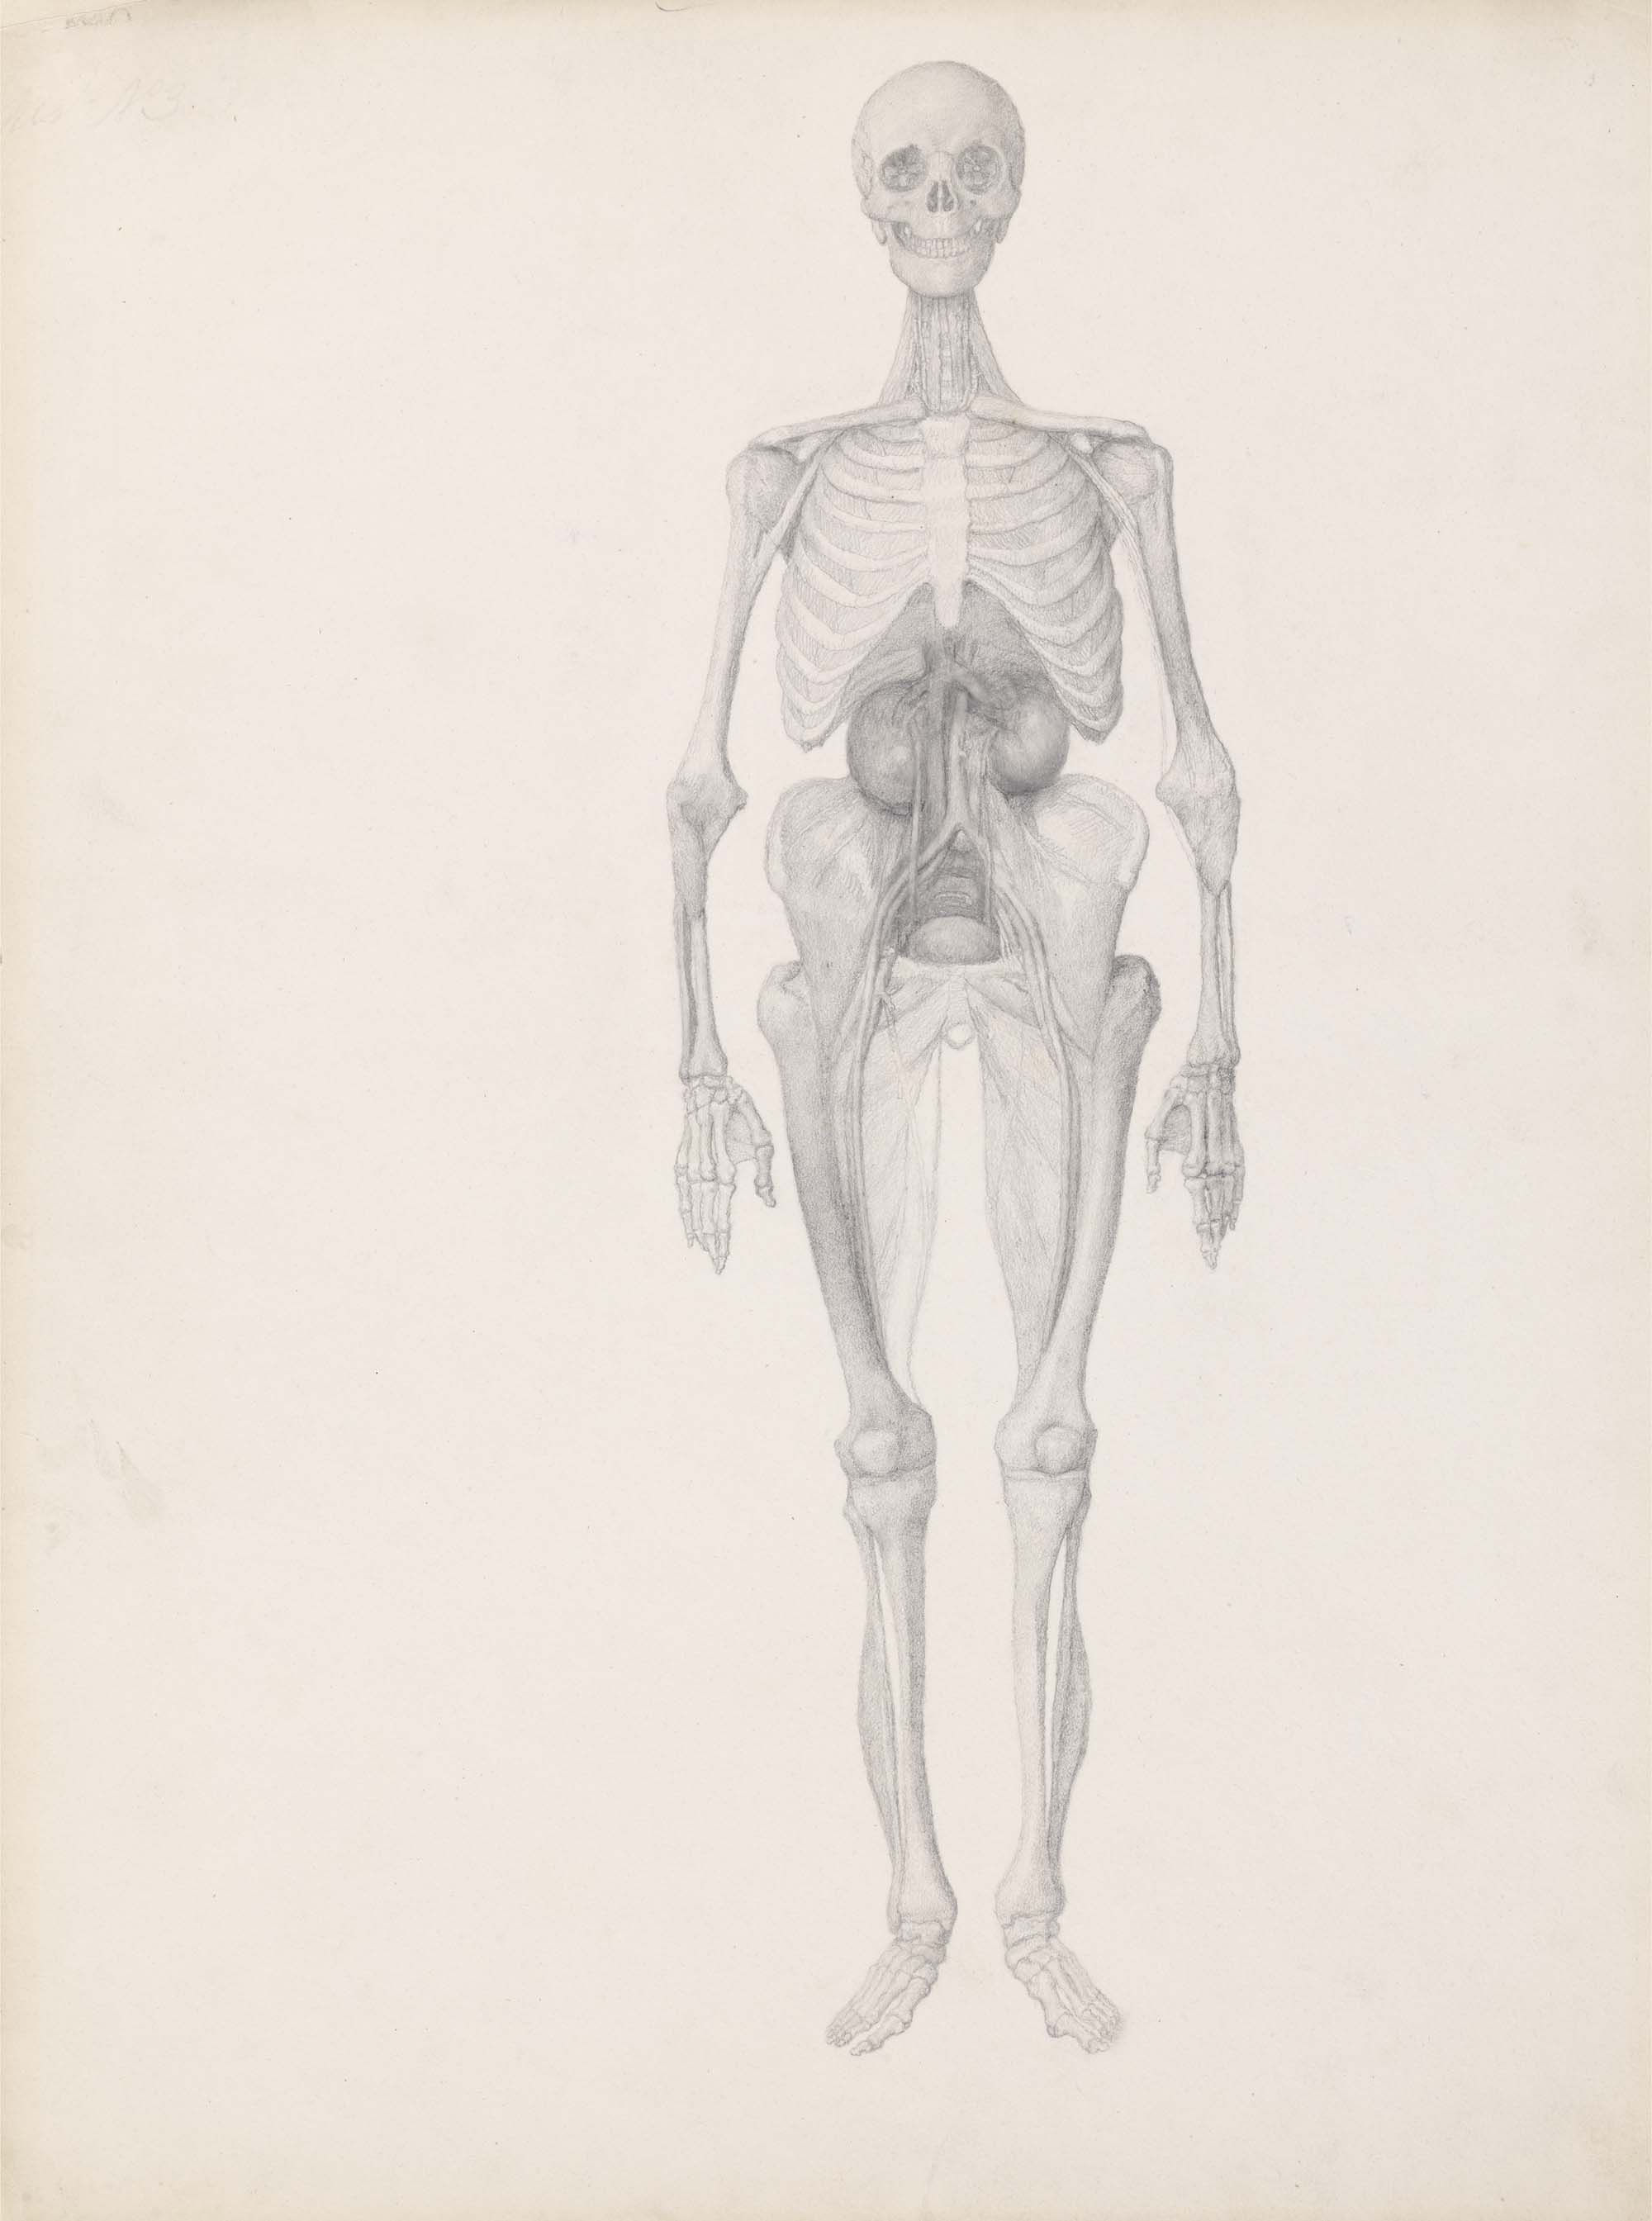 a drawing of a human skeleton